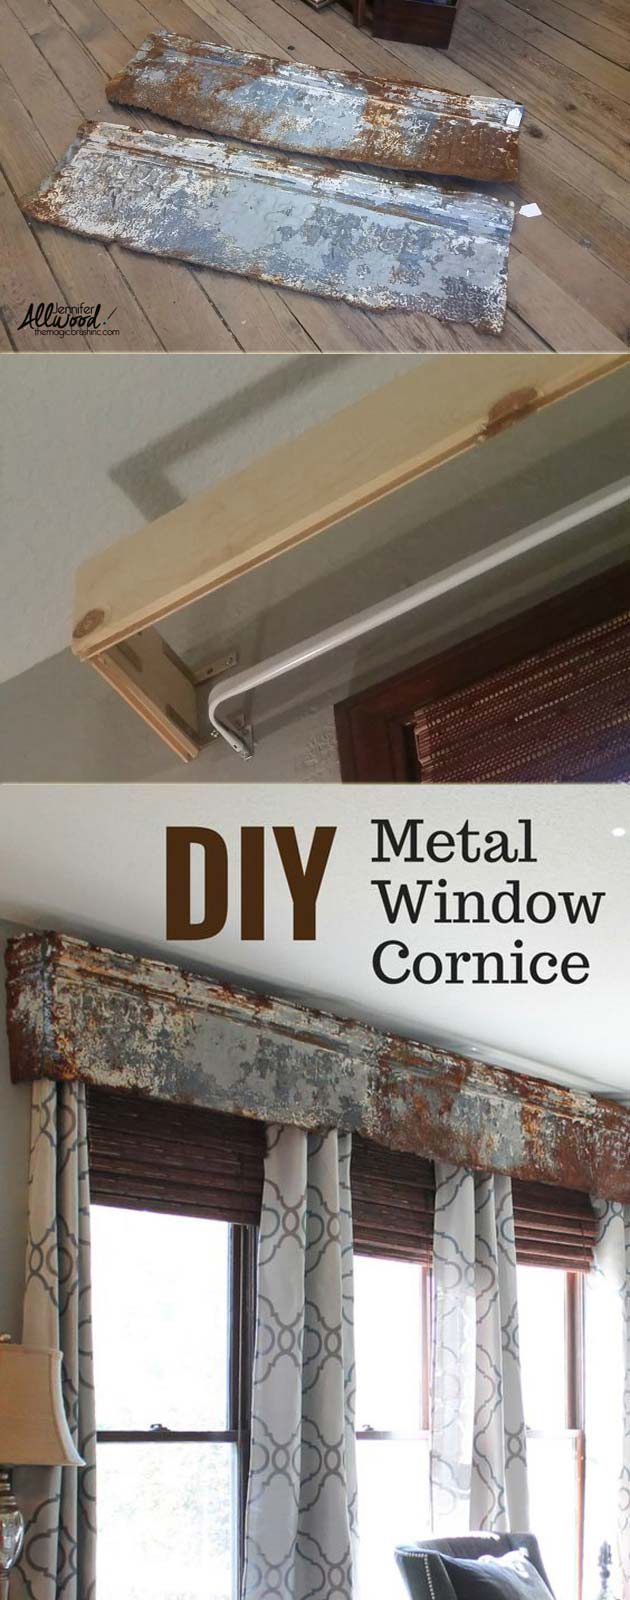 diy metal window cornice